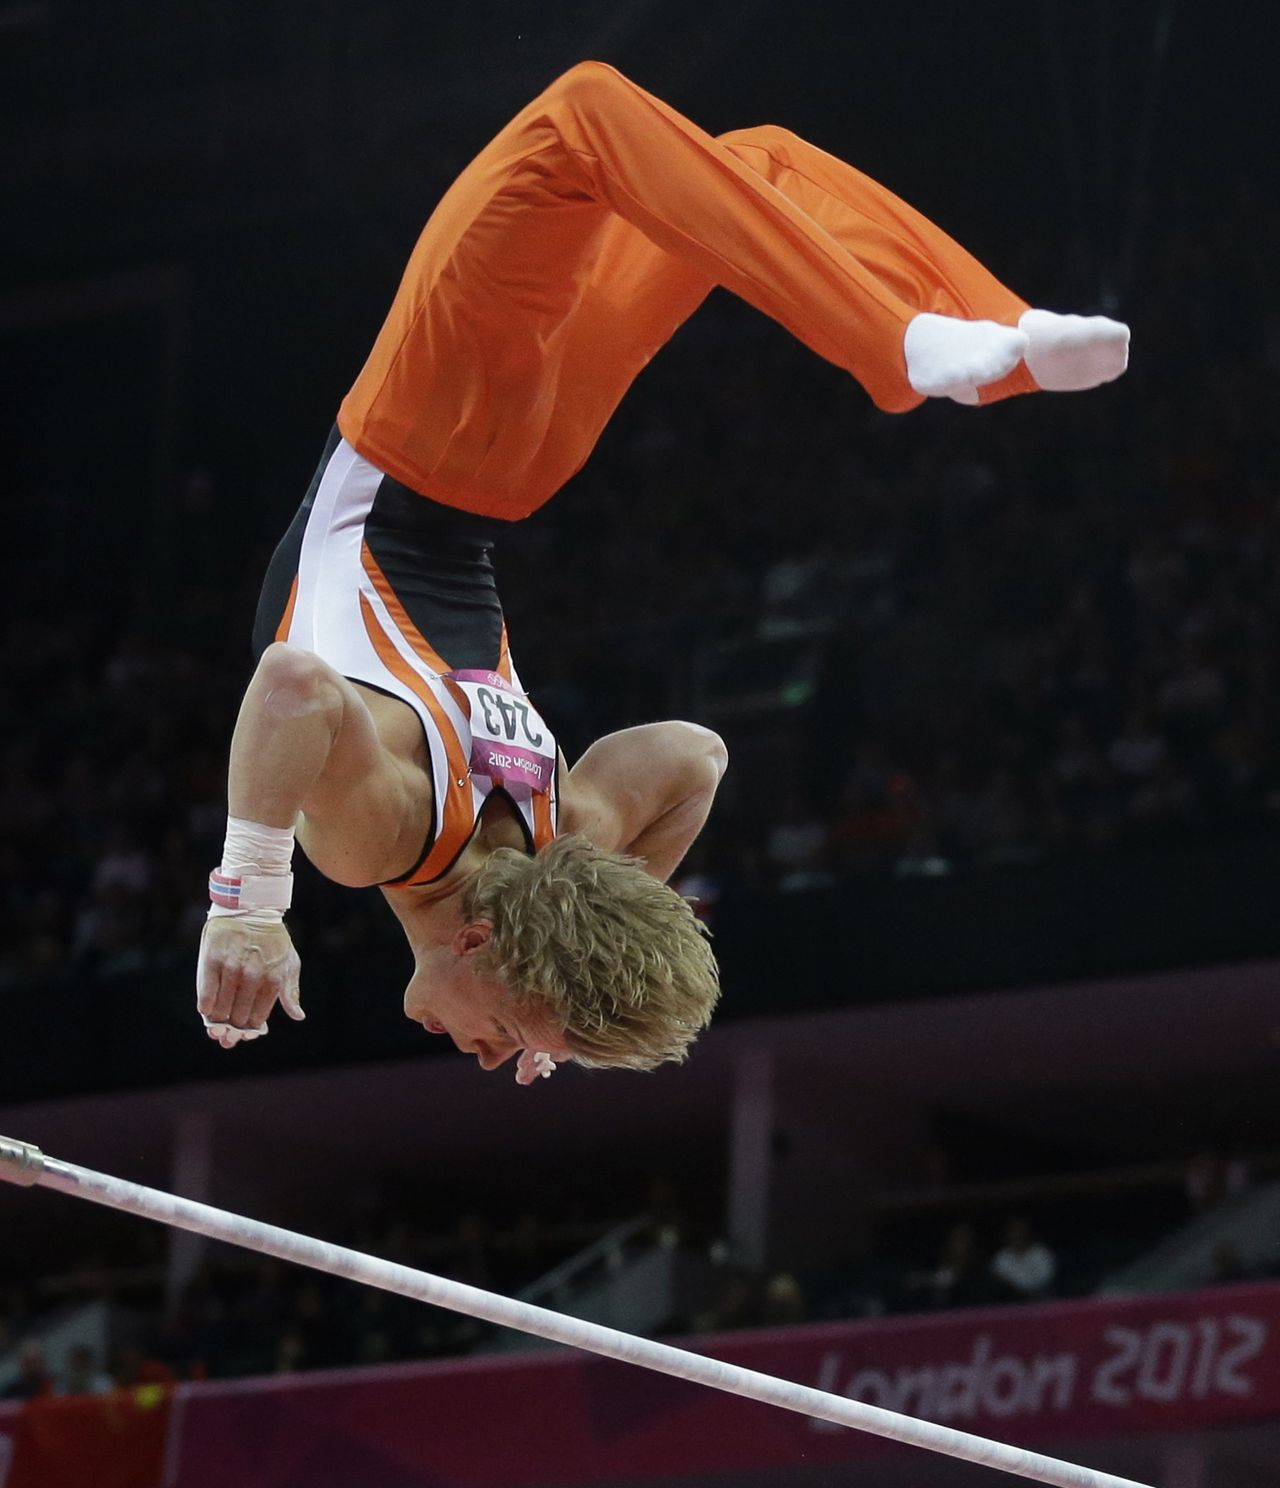 Gymnast from the Netherlands Epke Zonderland performs on the horizontal bar during the artistic gymnastics men's apparatus finals at the 2012 Summer Olympics, Tuesday, Aug. 7, 2012, in London. (AP Photo/Julie Jacobson)